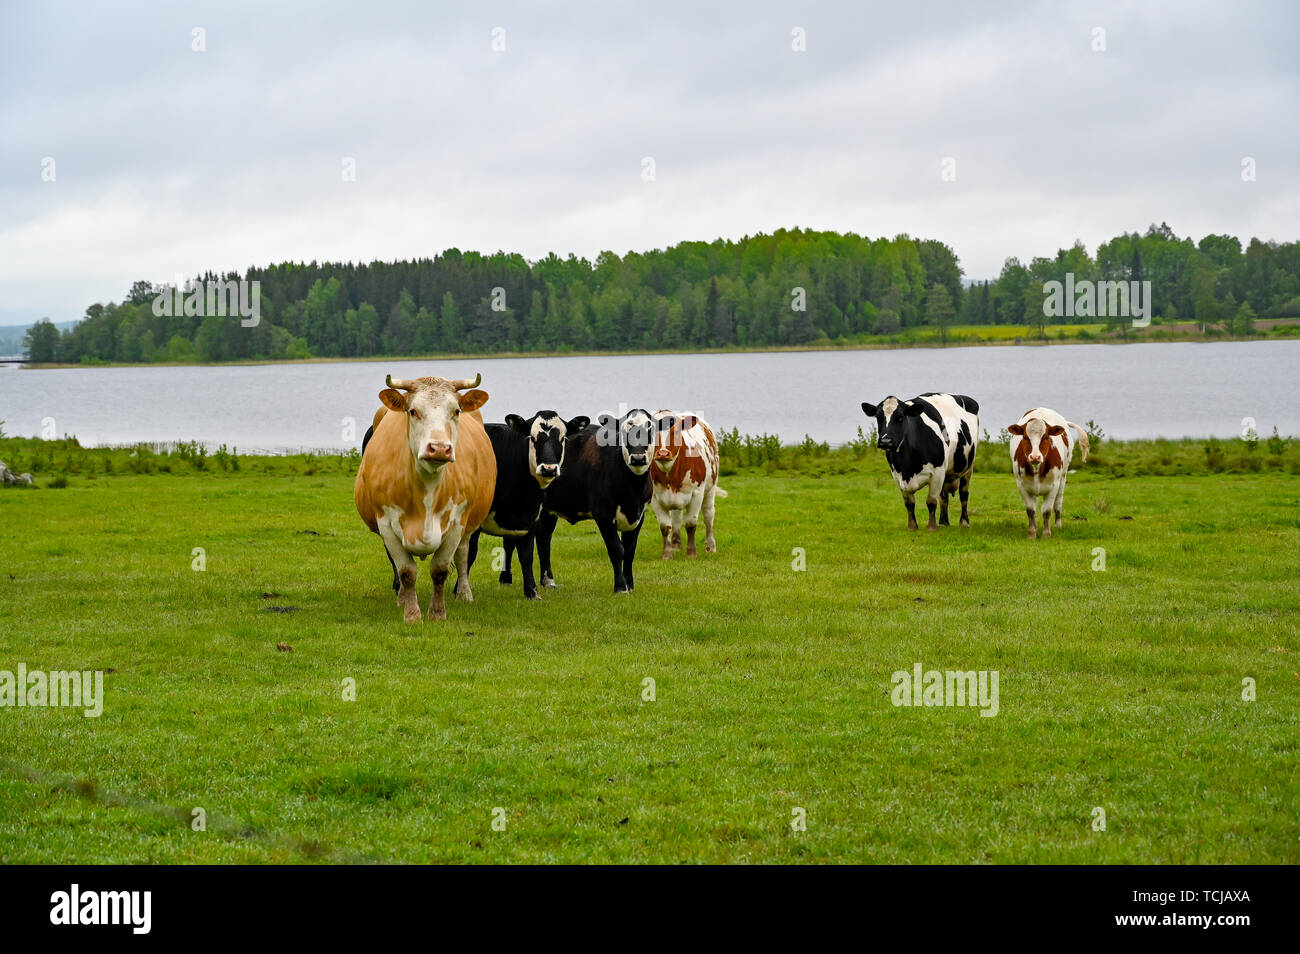 cows standing in a green field with a lake behind in Sweden may 2019 - Stock Image